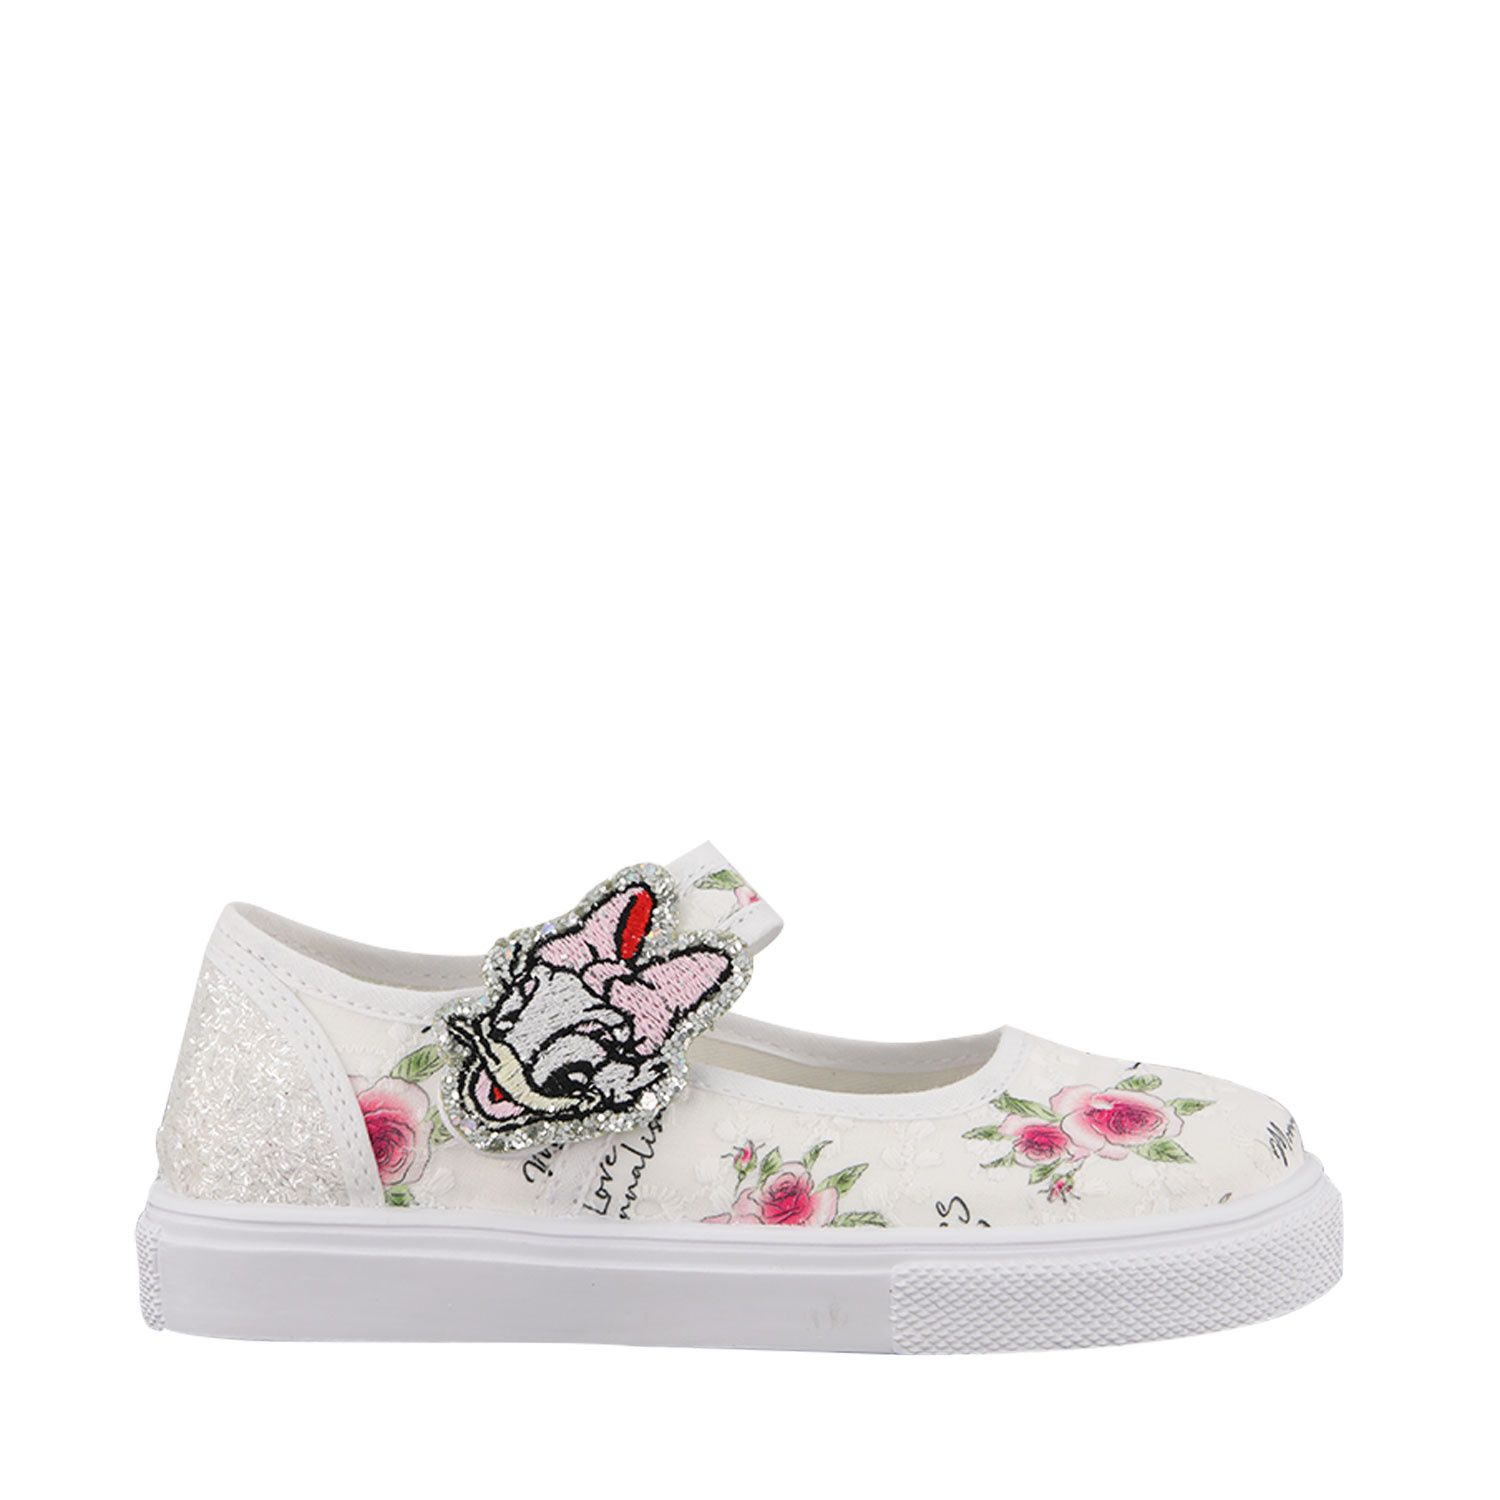 Picture of MonnaLisa 8C7027 kids shoes white